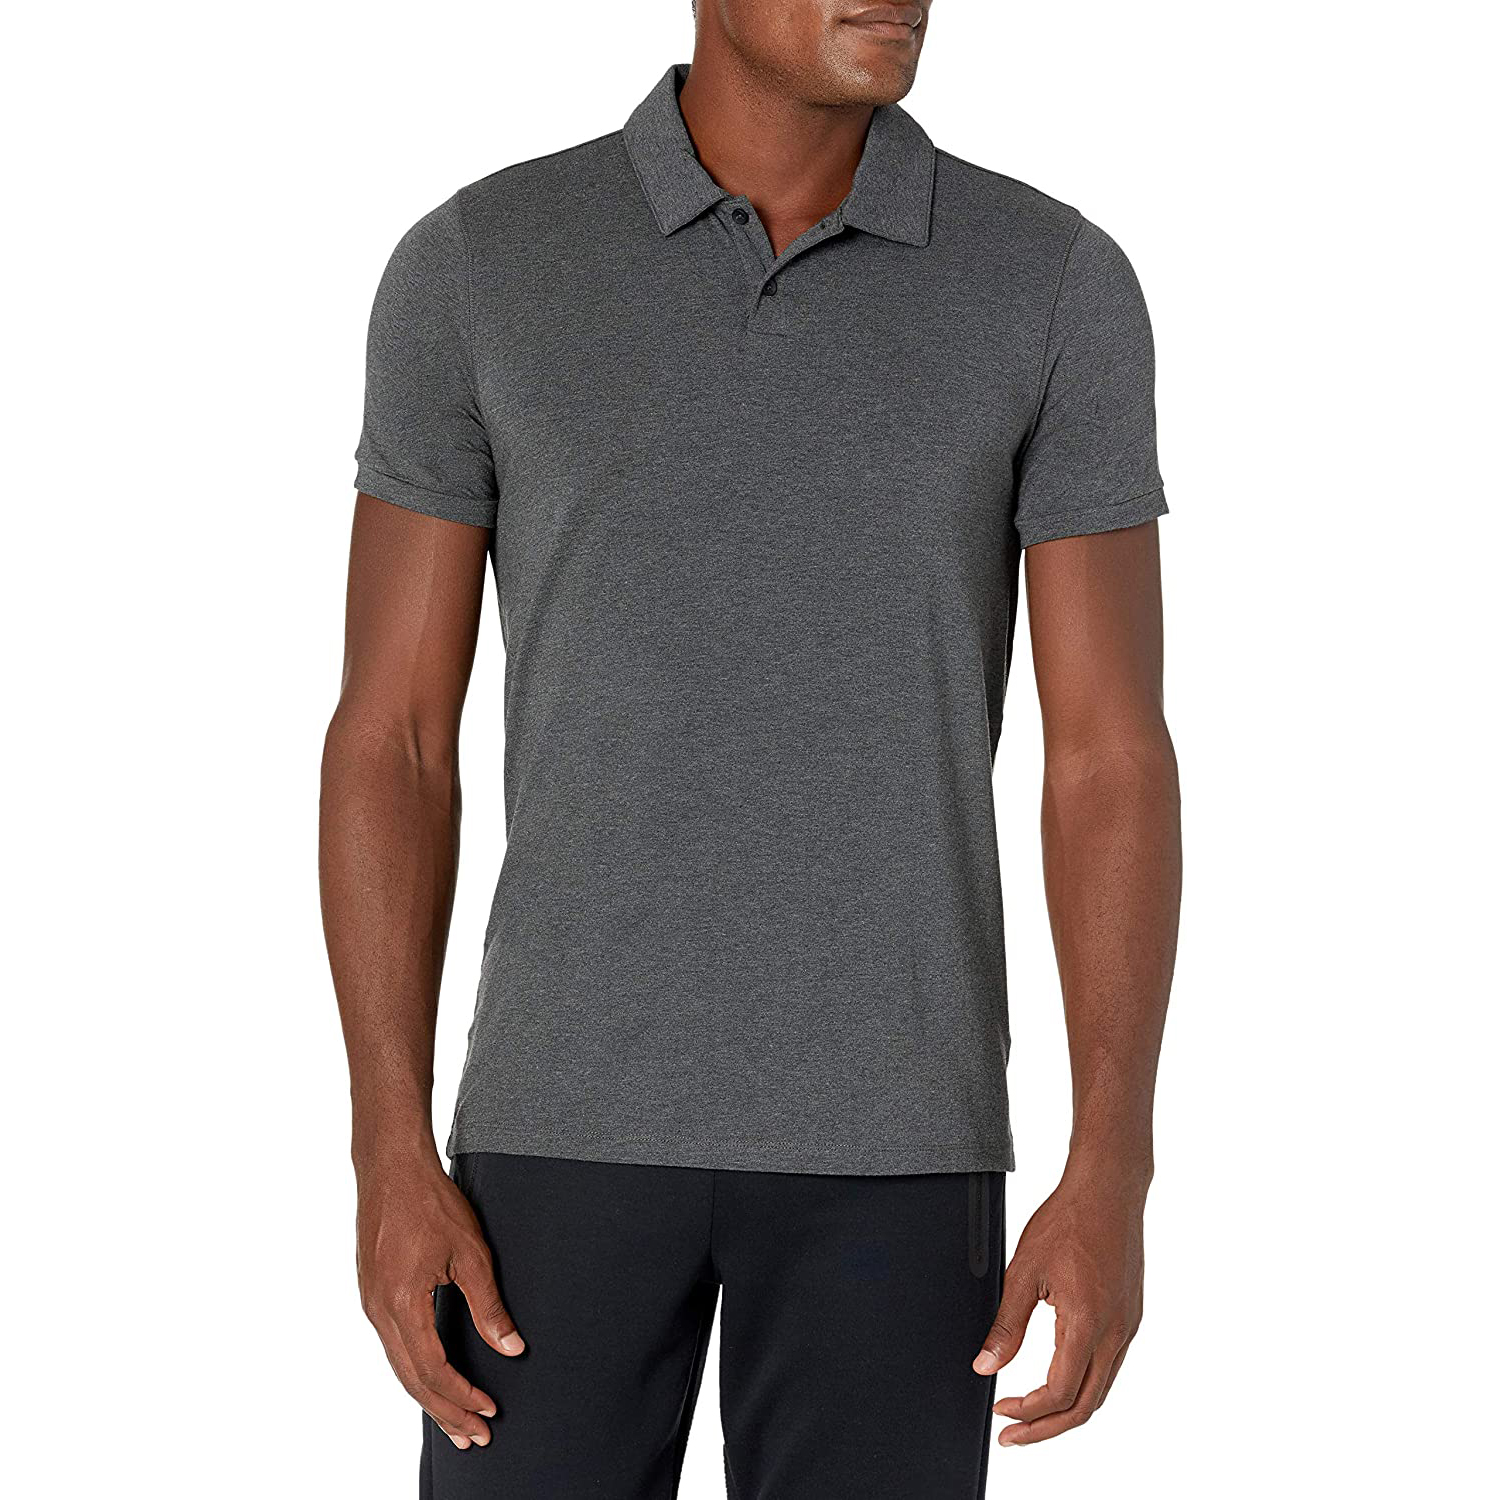 Amazon Essentials Clothing for Men and Women